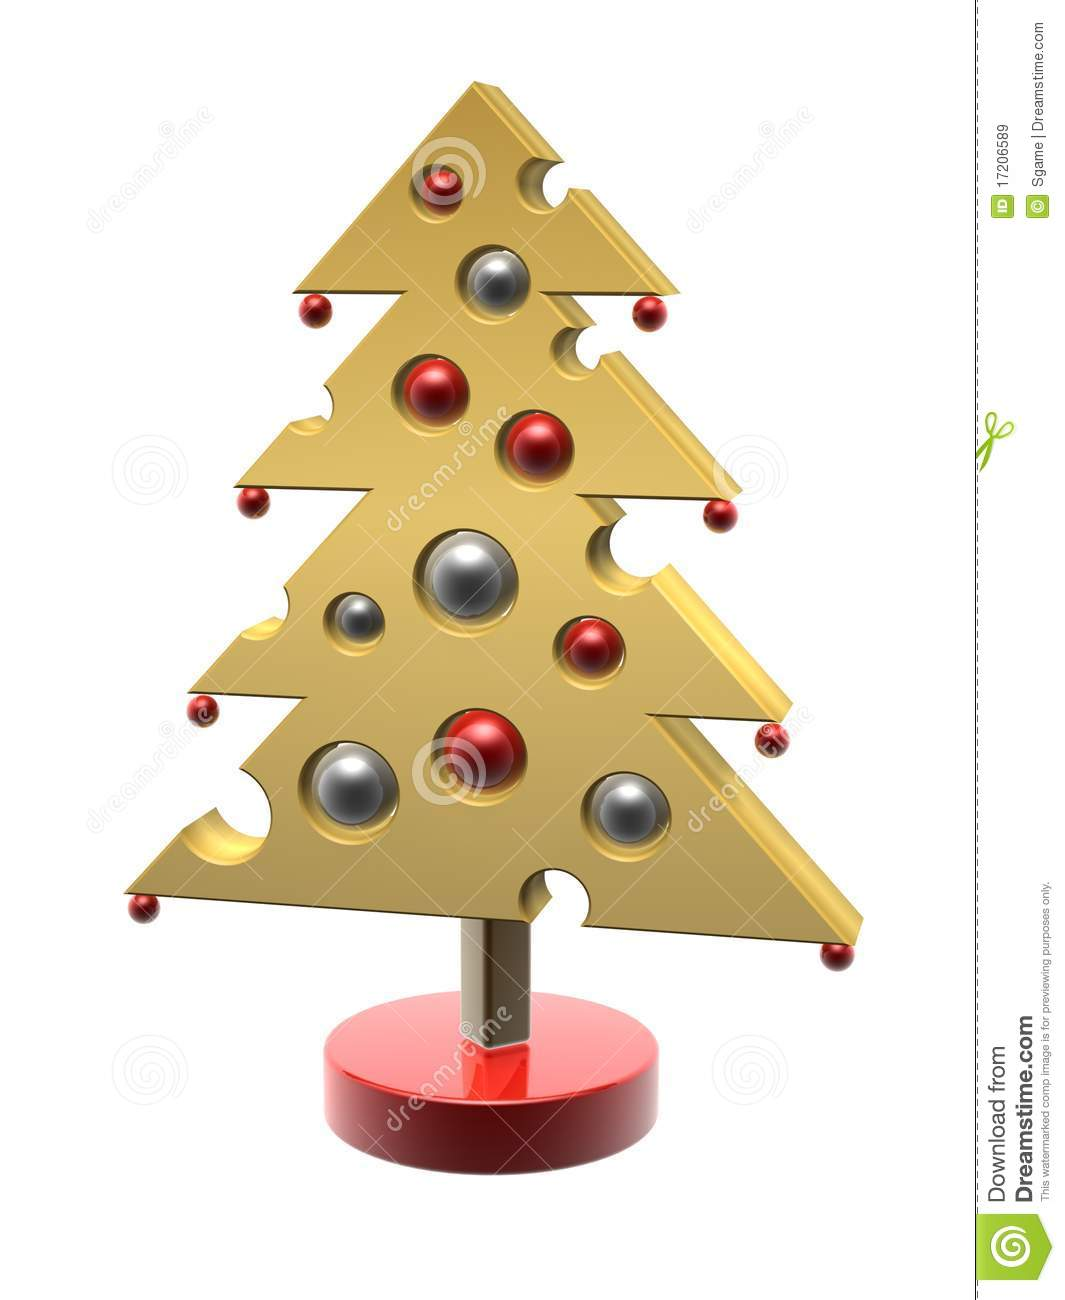 Cheese Christmas Tree Royalty Free Stock Images - Image: 17206589